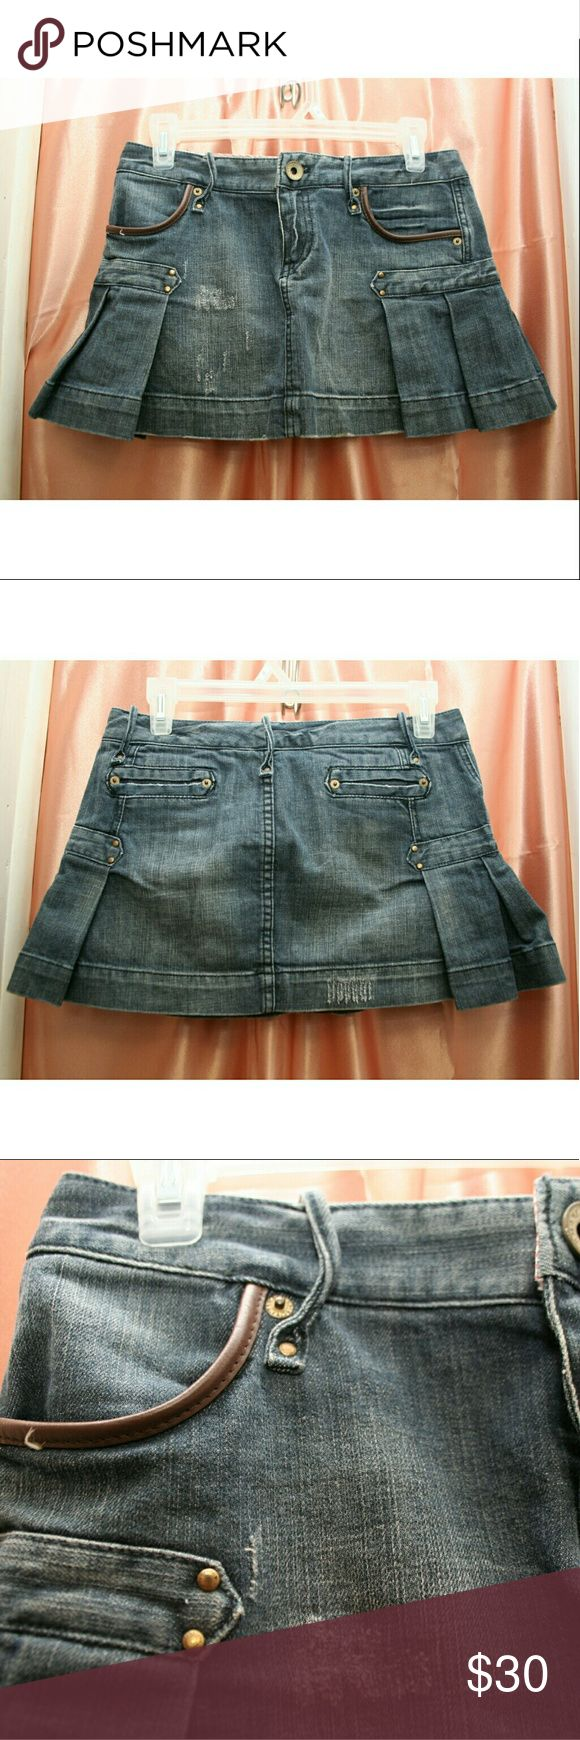 Mini denim skirt Very cute and comfy pleated denim skirt. It is in excellent condition . The quality is exceptional, it has a distressed look to it. I cant use it anymore i gained weight it's too short for me now. A little stretchy. It doesnt go up or down like many mini skirts i had before. Armani Exchange Skirts Mini